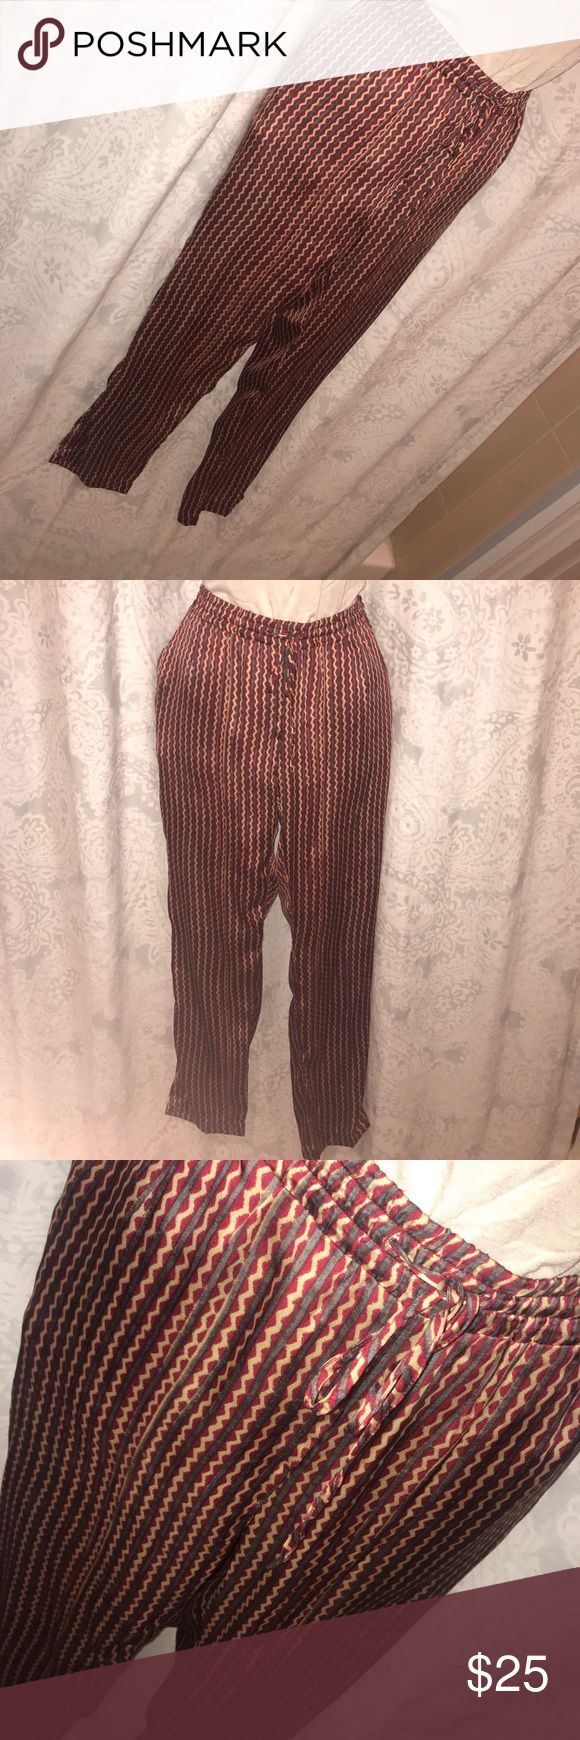 Lauren by Ralph Lauren patterned soft pants Comfy and funky pants with cool pattern. Easily mix up your look with these relaxed fit pants. Lauren Ralph Lauren Pants Track Pants & Joggers